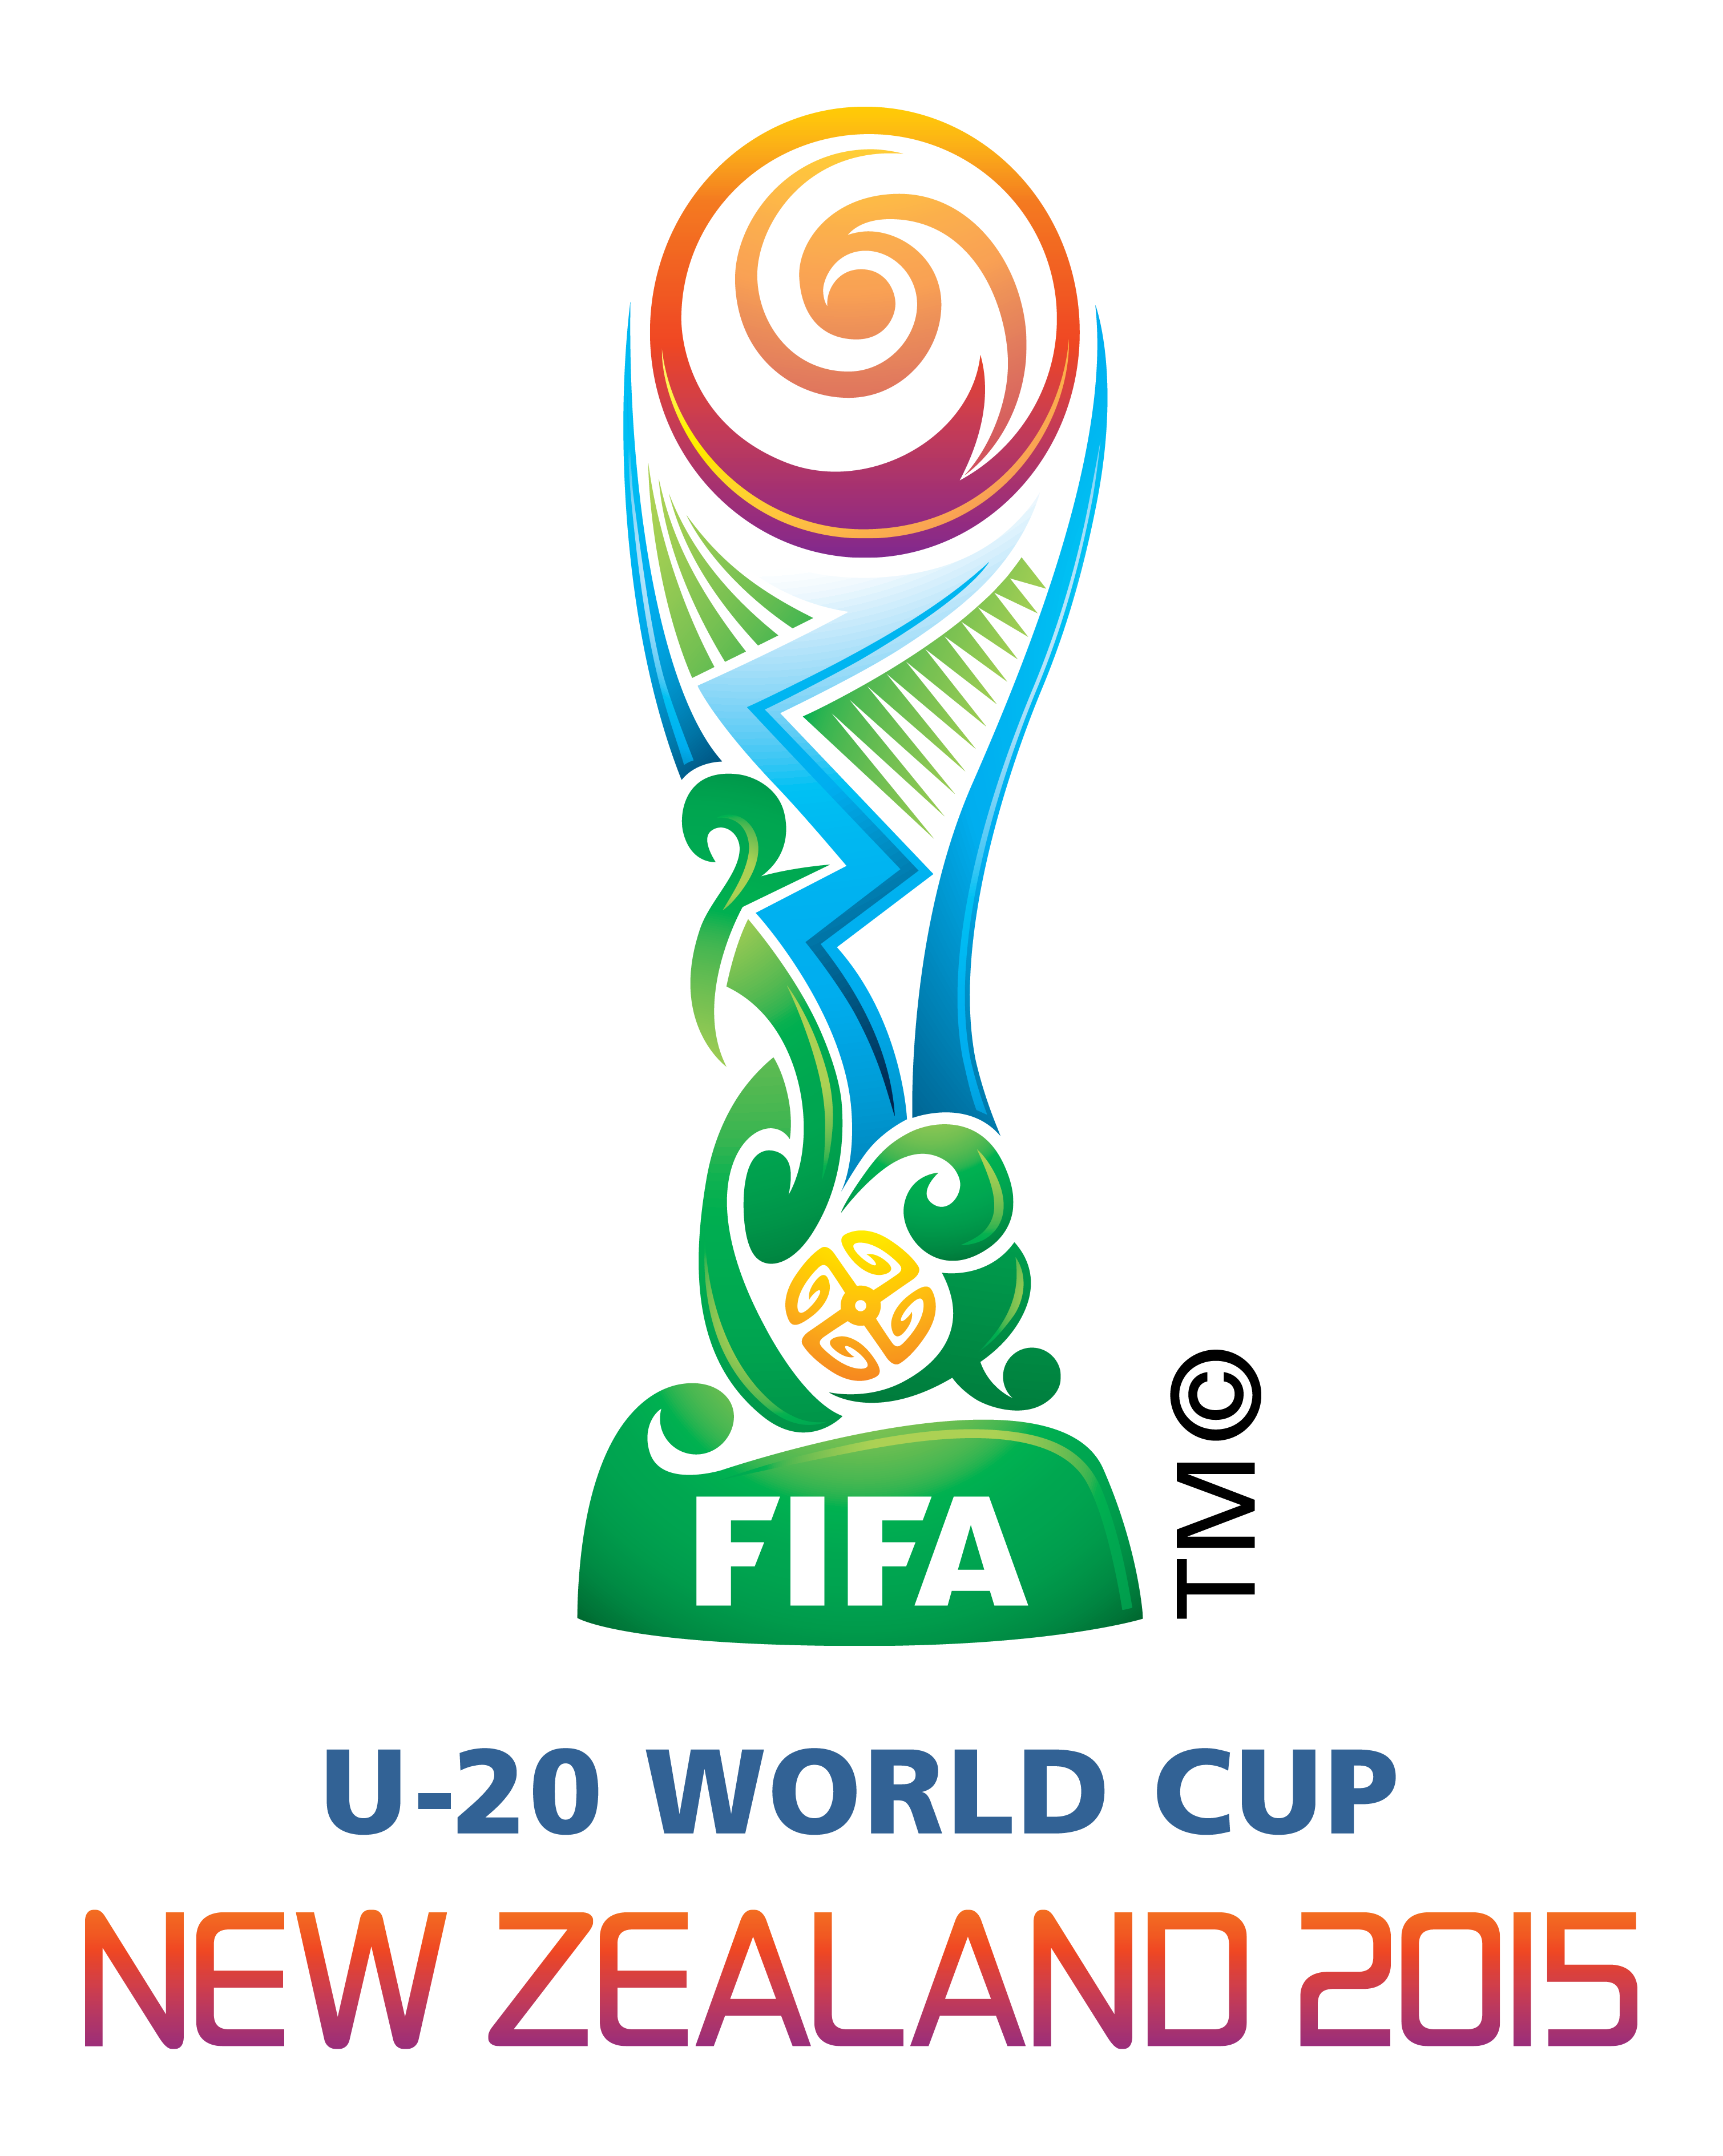 Media accreditation for the Official Draw for the FIFA U-20 World Cup New Zealand 2015